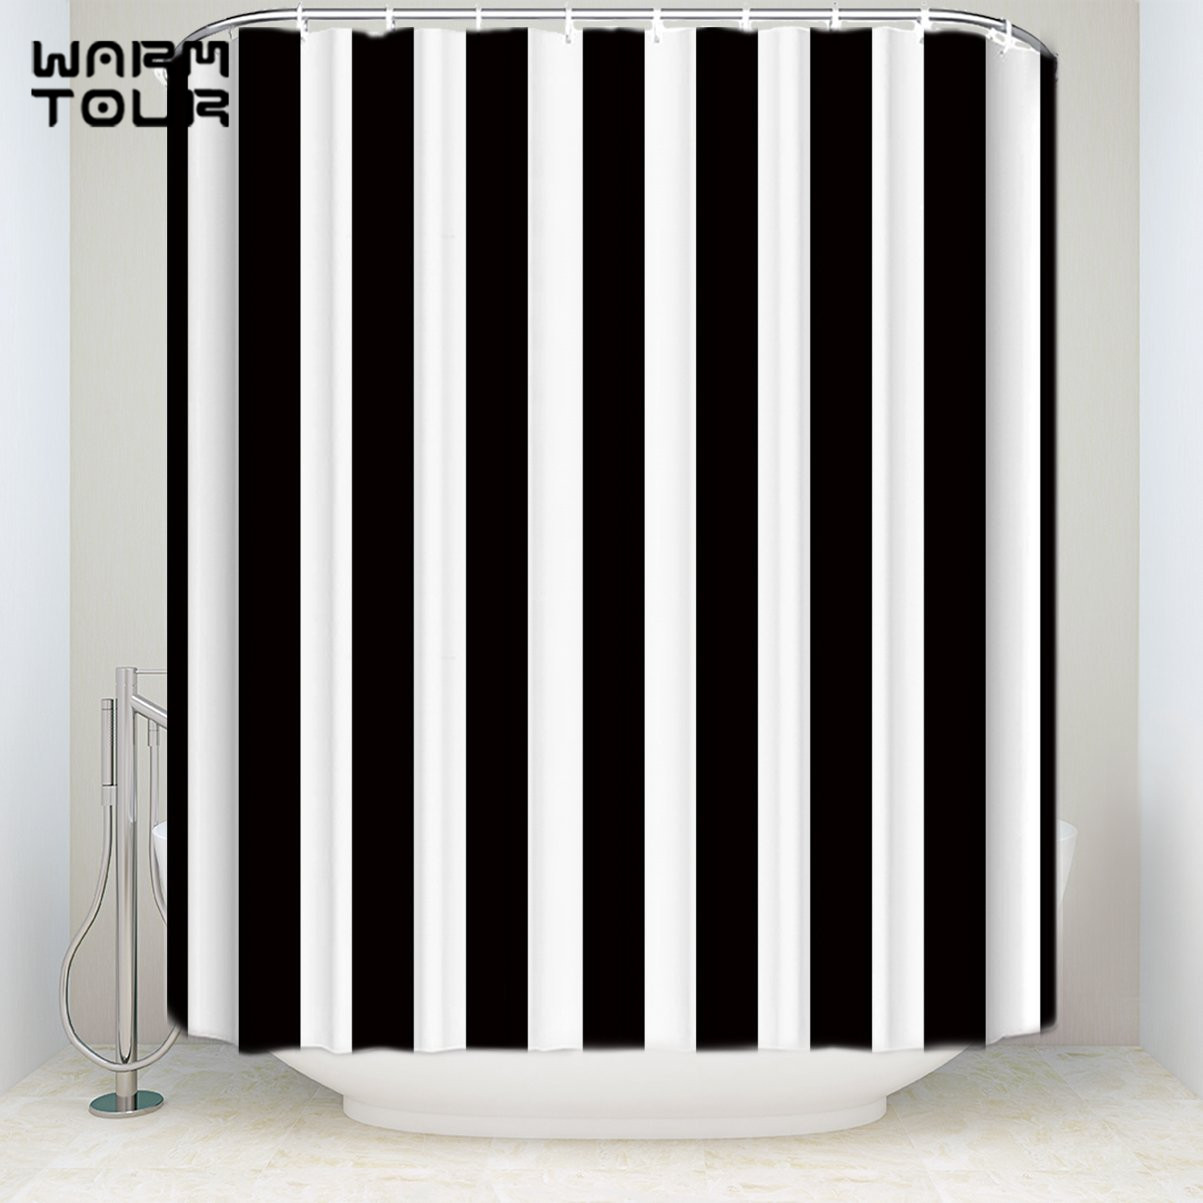 Us 16 23 30 Off Bath Shower Curtains Black And White Vertical Stripes Mildew Resistant Bathroom Decor Sets With Hooks 54